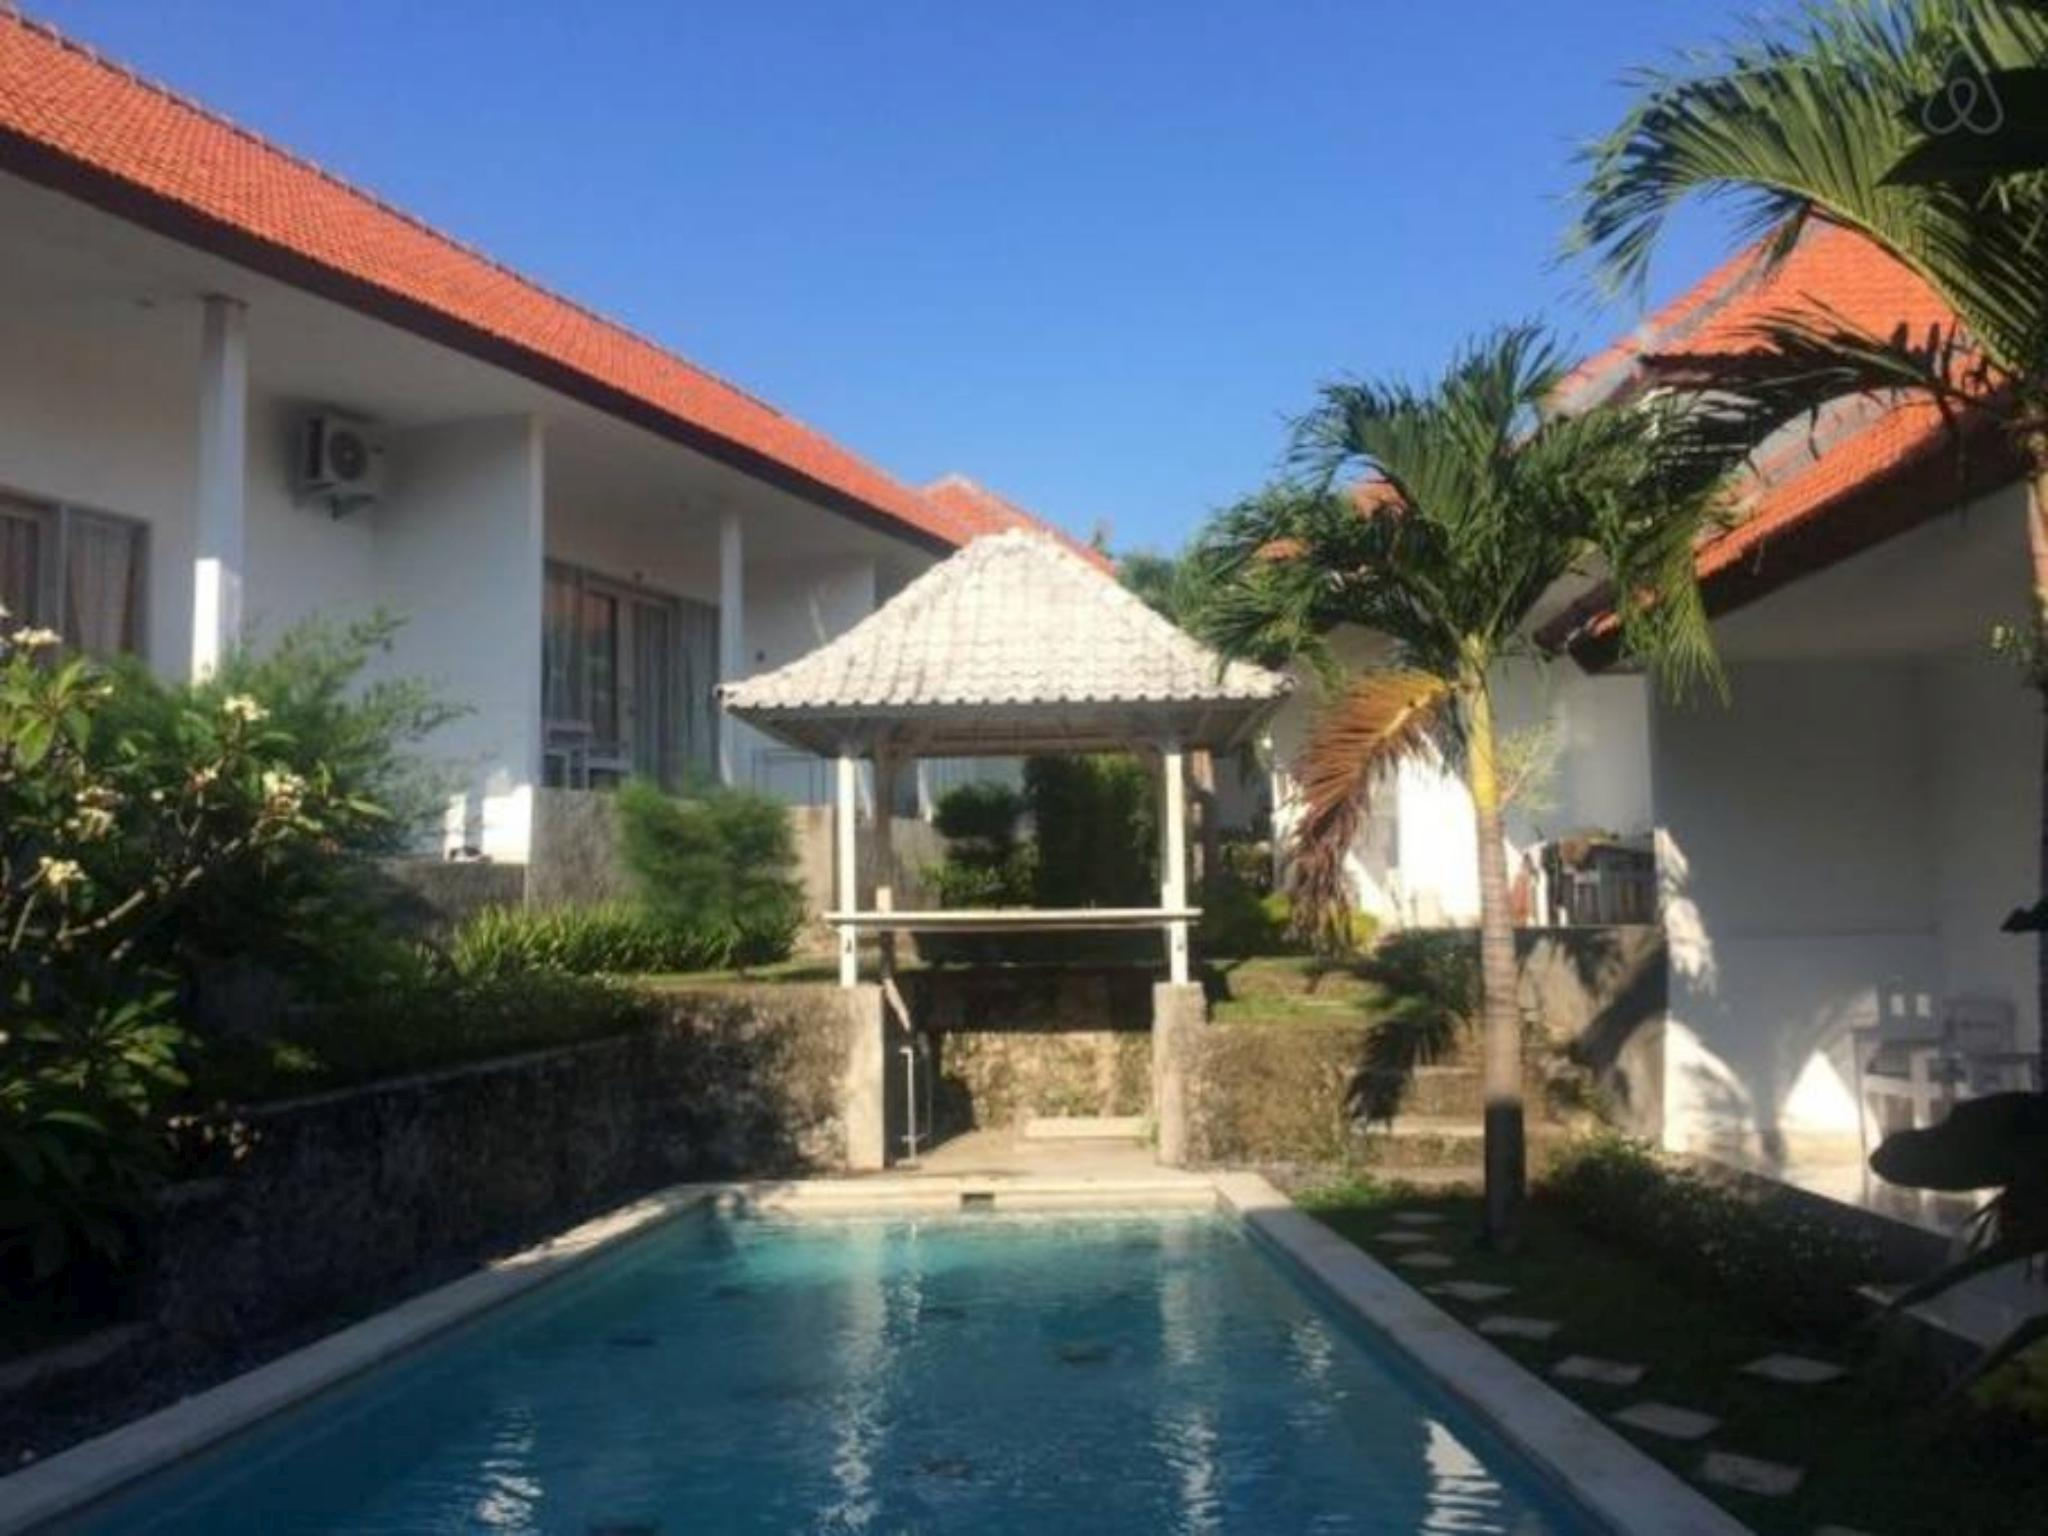 Review RELAX and ENJOY the BALINESE LIFESTYLE VILLA